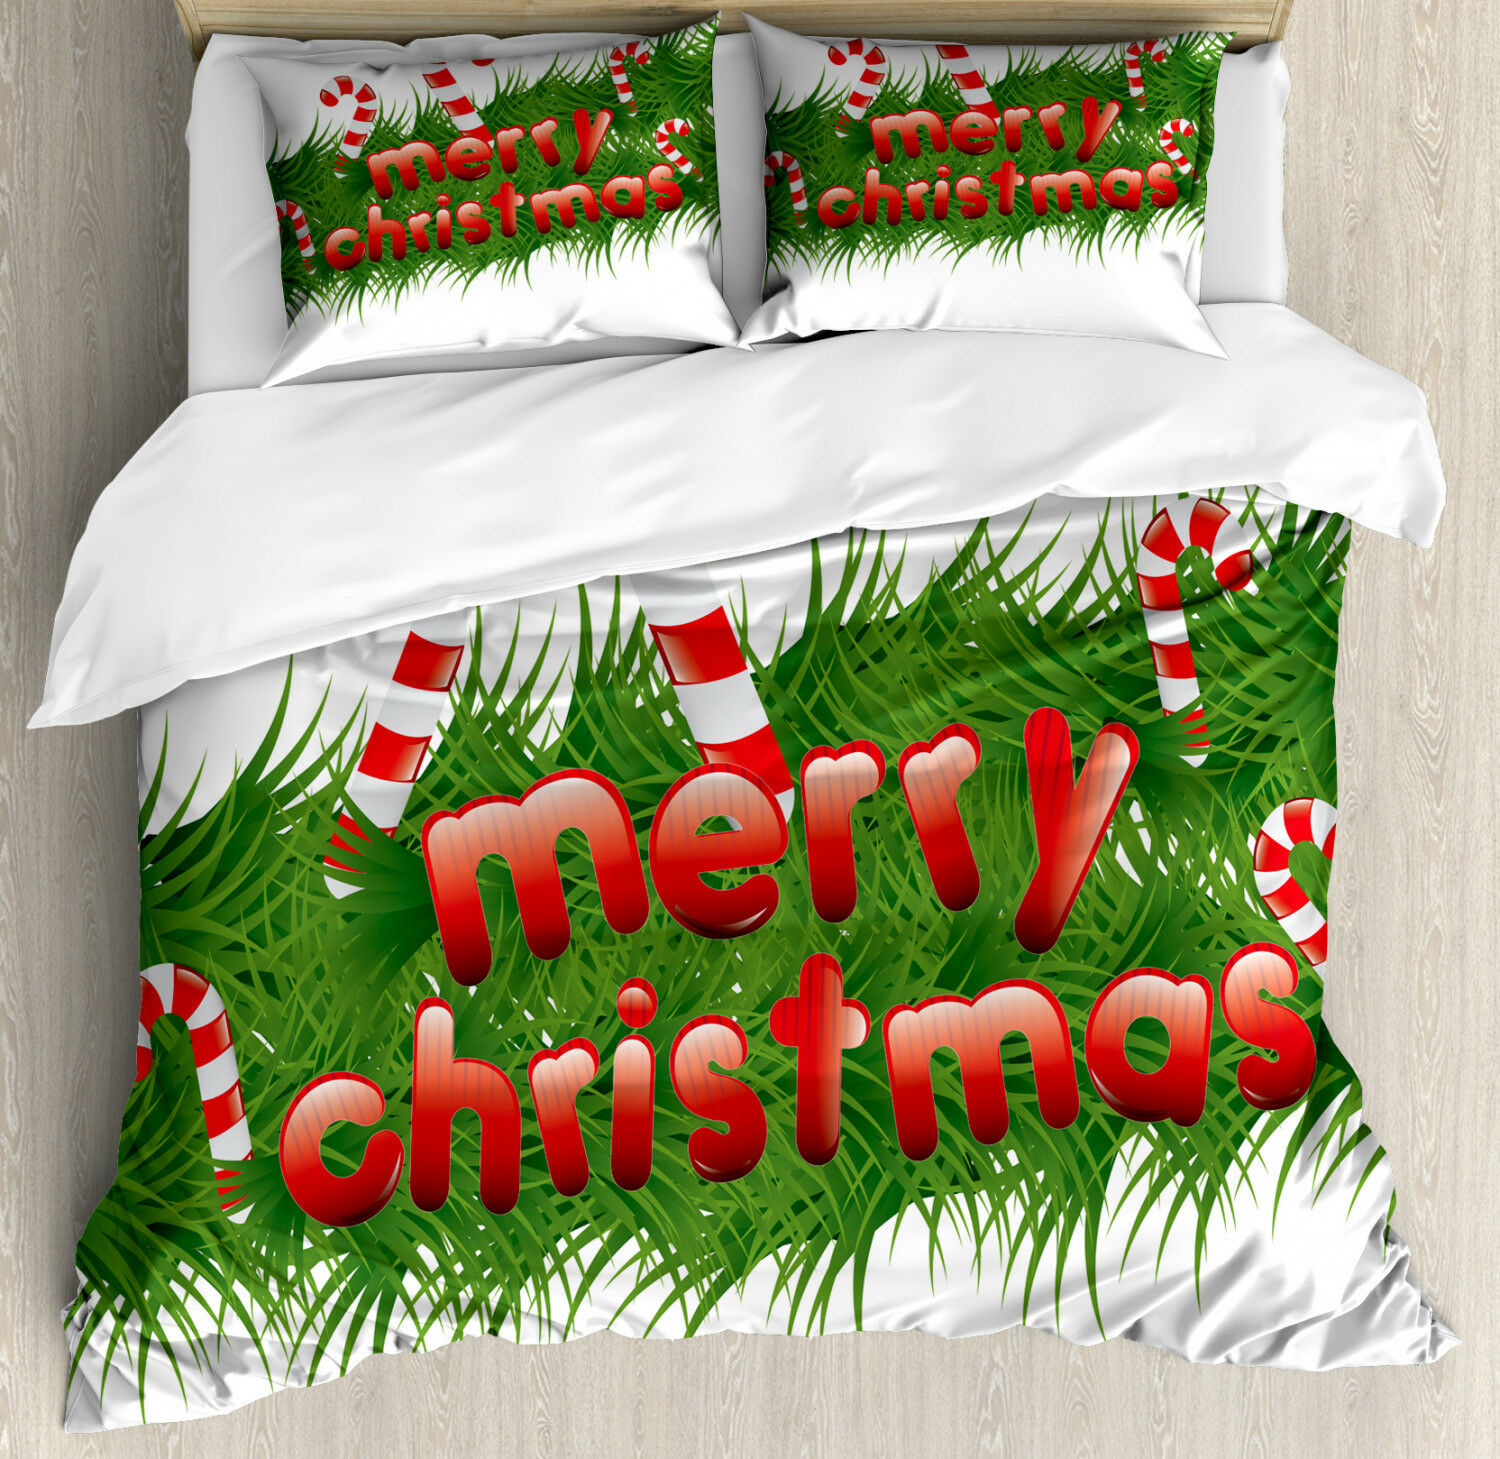 Christmas Duvet Cover Set with Pillow Shams Candy Canes Garland Print